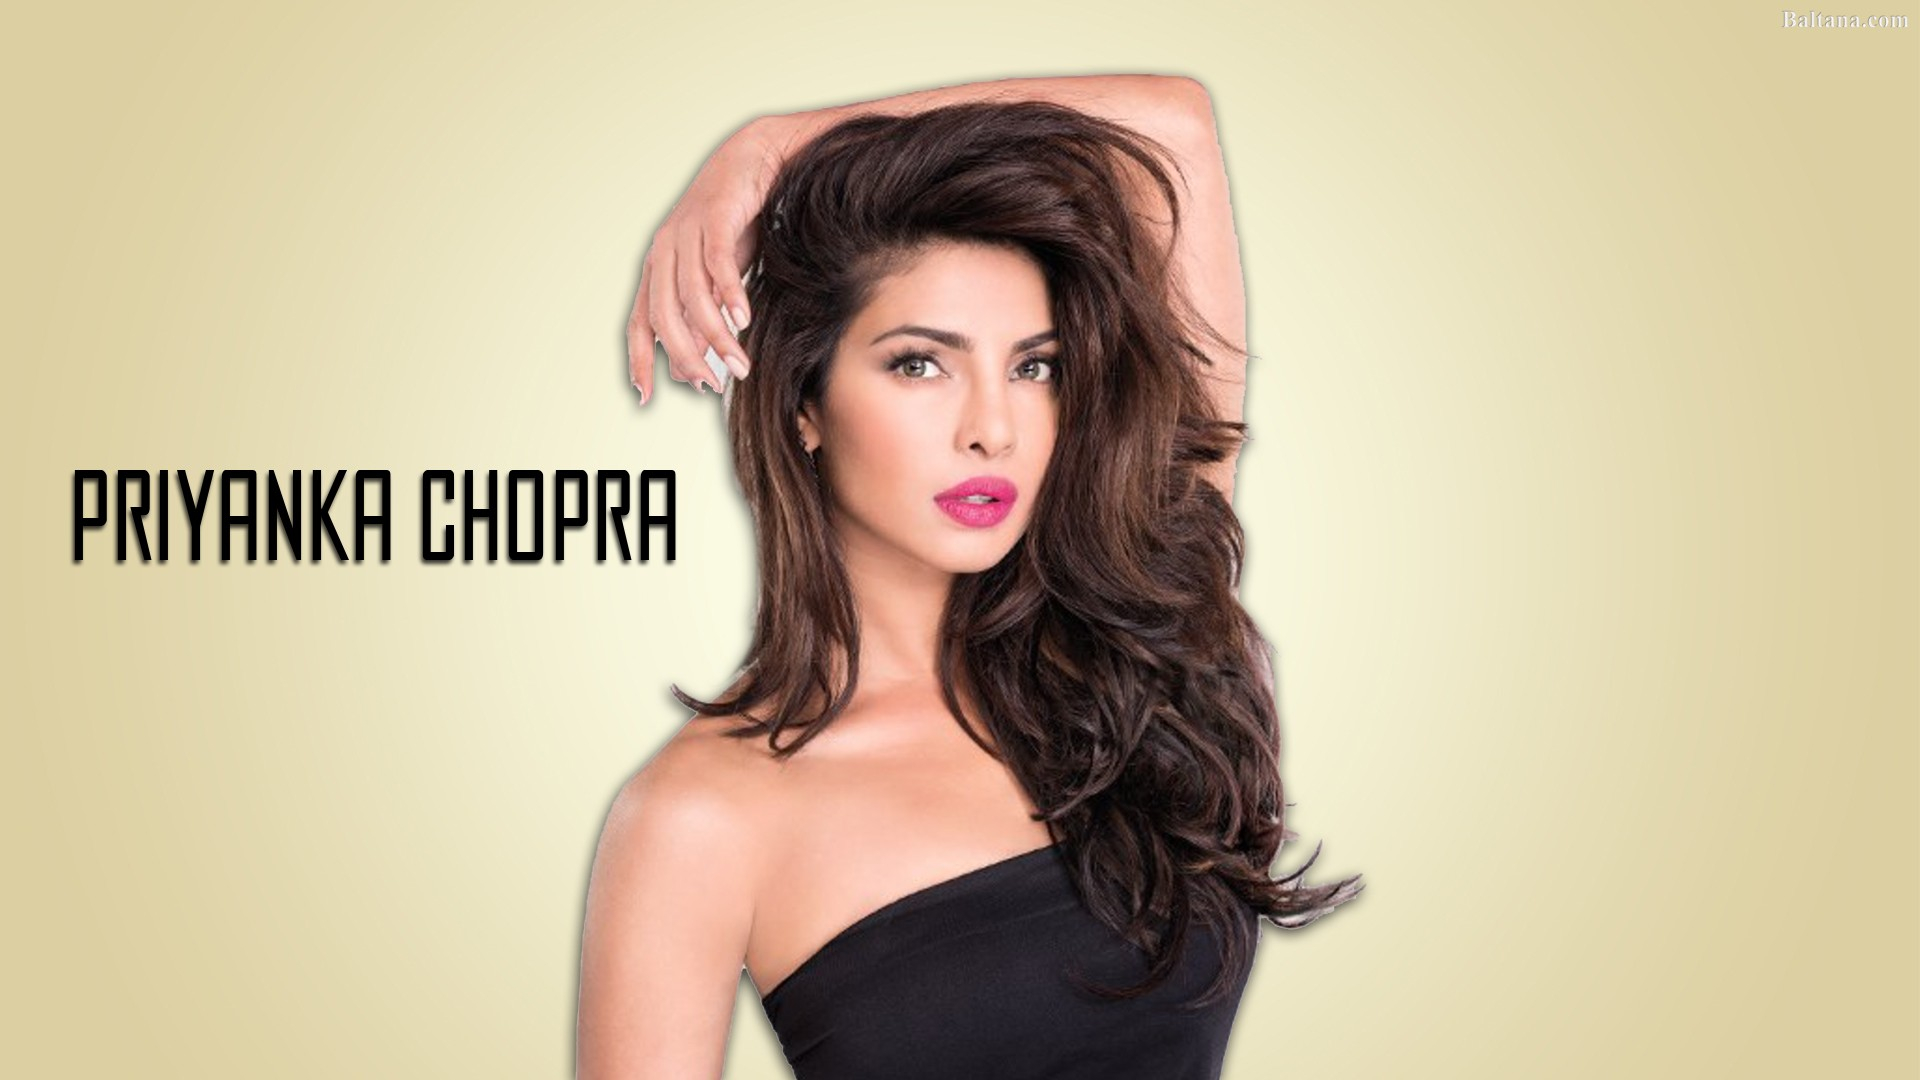 free download priyanka chopra wallpapers hd backgrounds images pics photos 1920x1080 for your desktop mobile tablet explore 25 priyanka chopra 2019 wallpapers priyanka chopra 2019 wallpapers priyanka chopra priyanka chopra 4k wallpapers priyanka chopra 2019 wallpapers